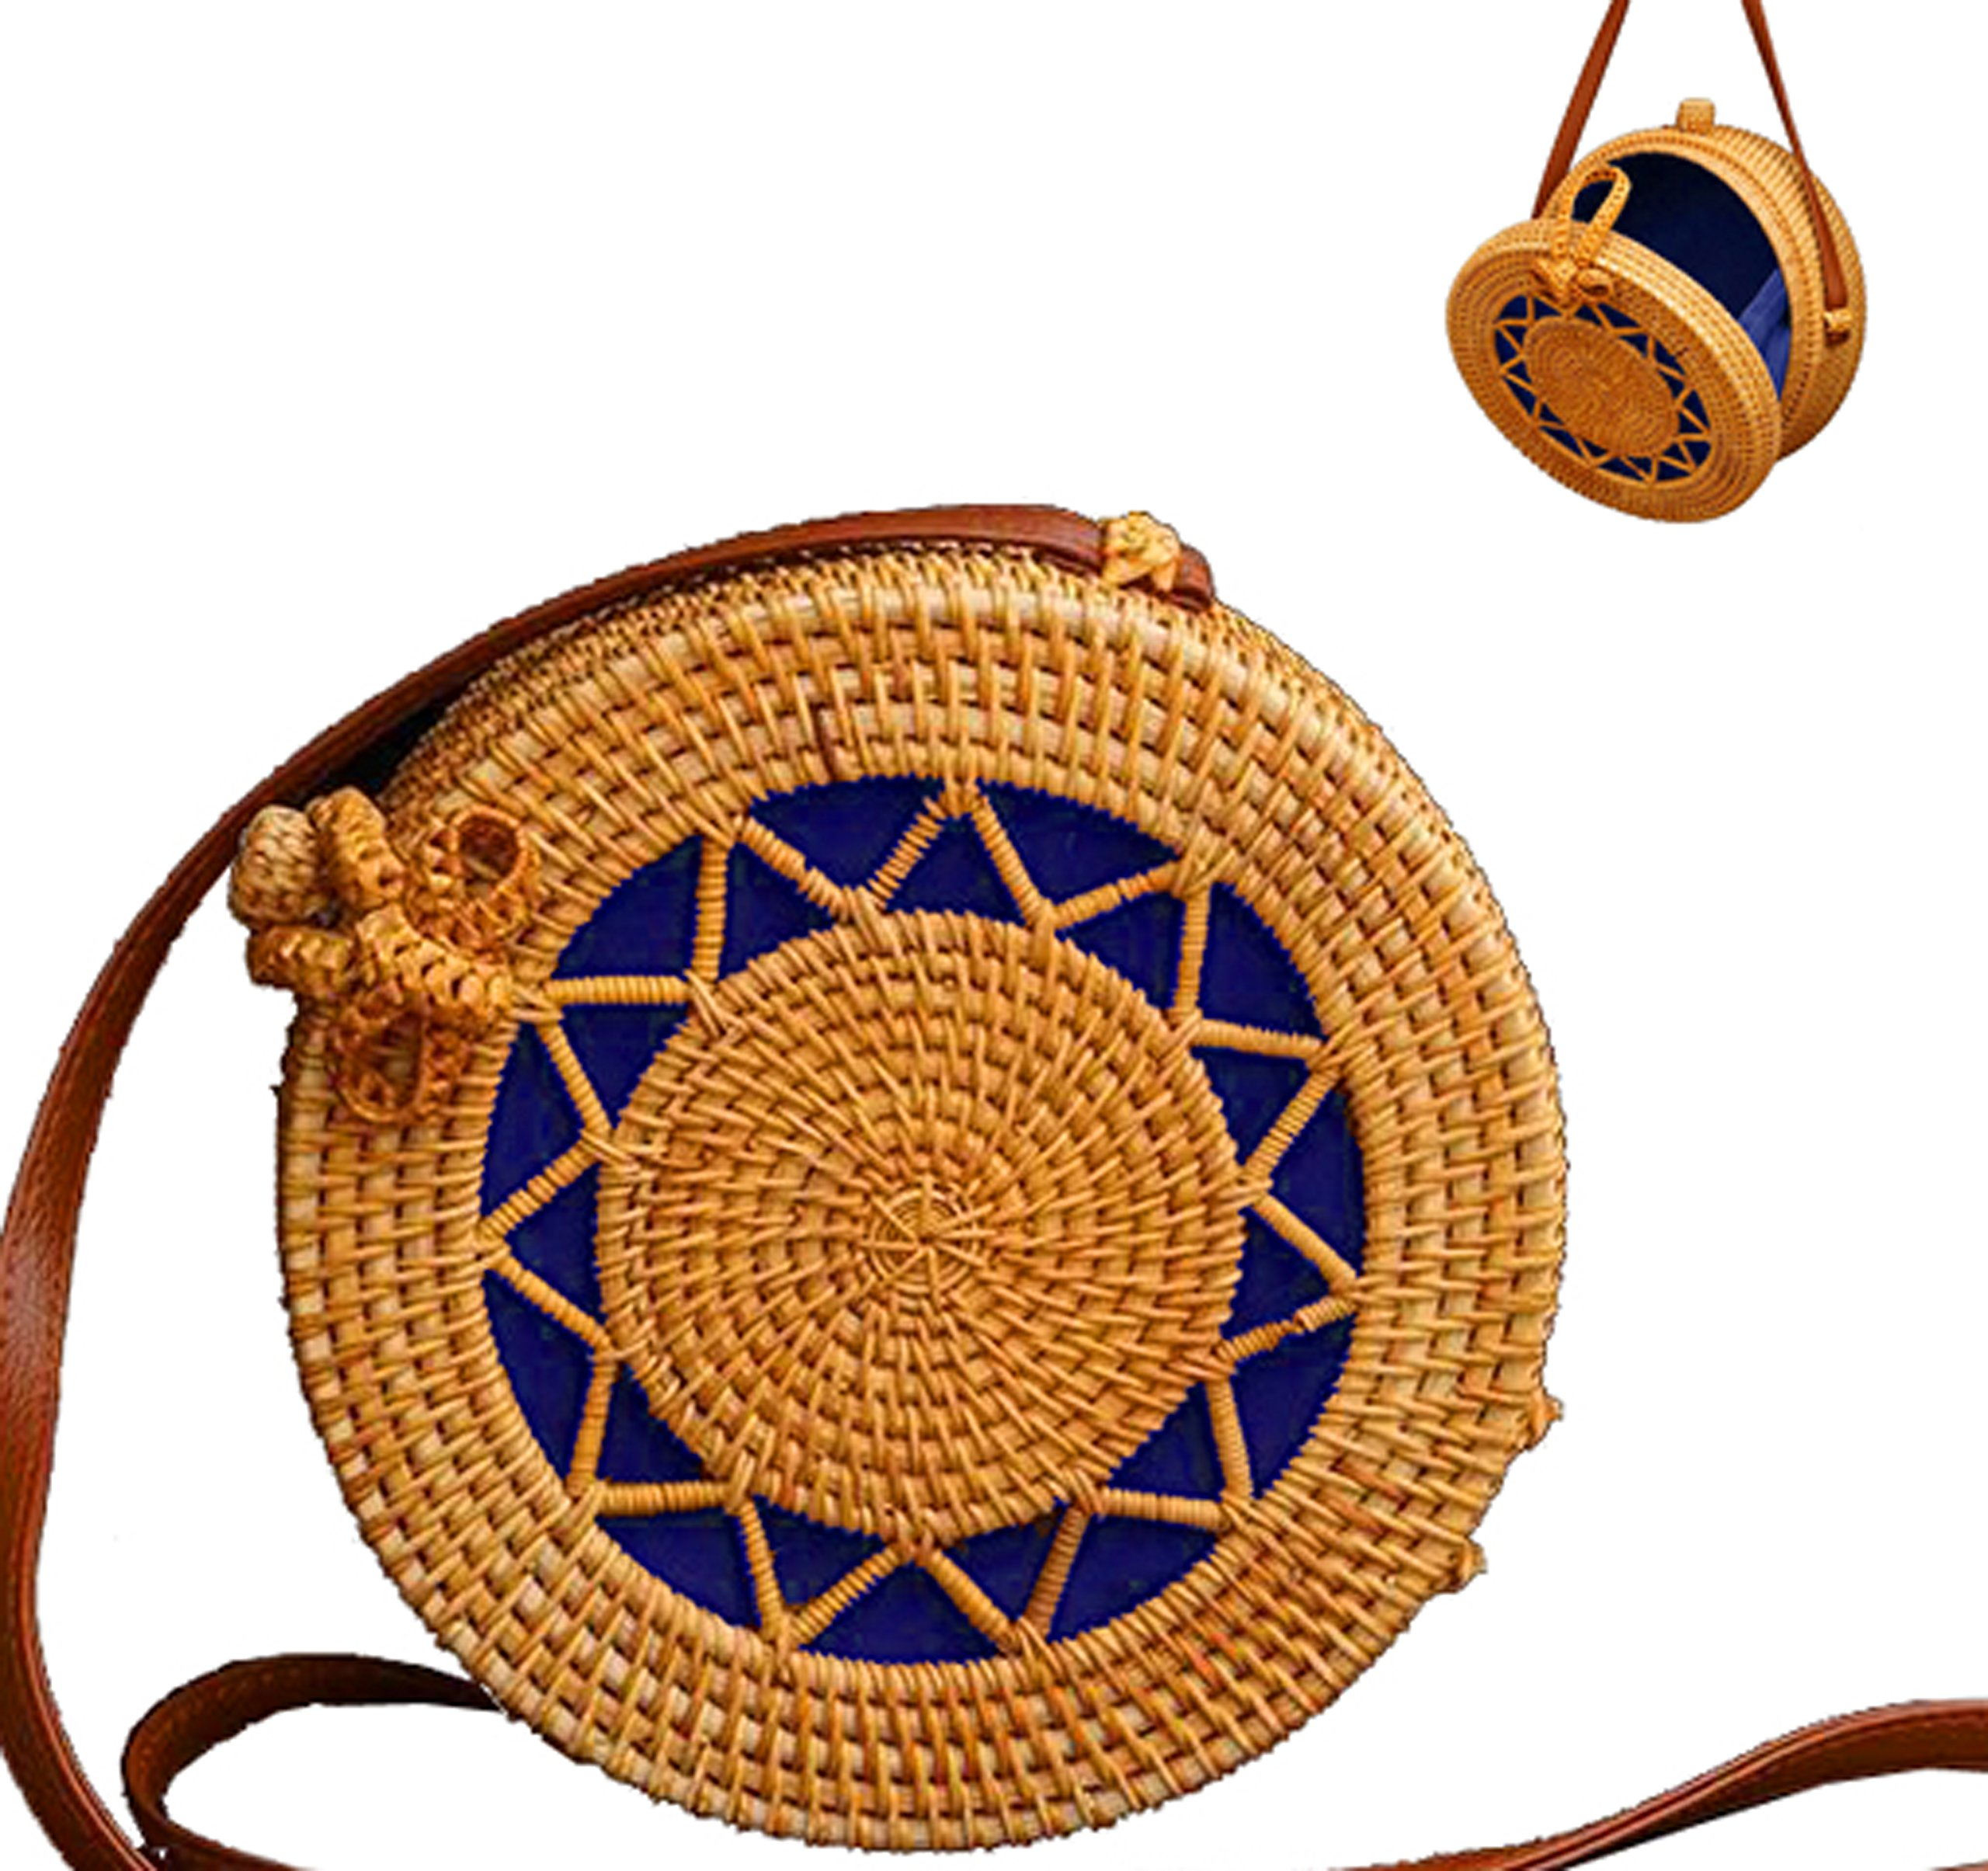 Women Handmade Round Woven Rattan Bag | Bohemian Shoulder Bag | Crossbody Straw Handbag (D: 7.9 in (L), Star)